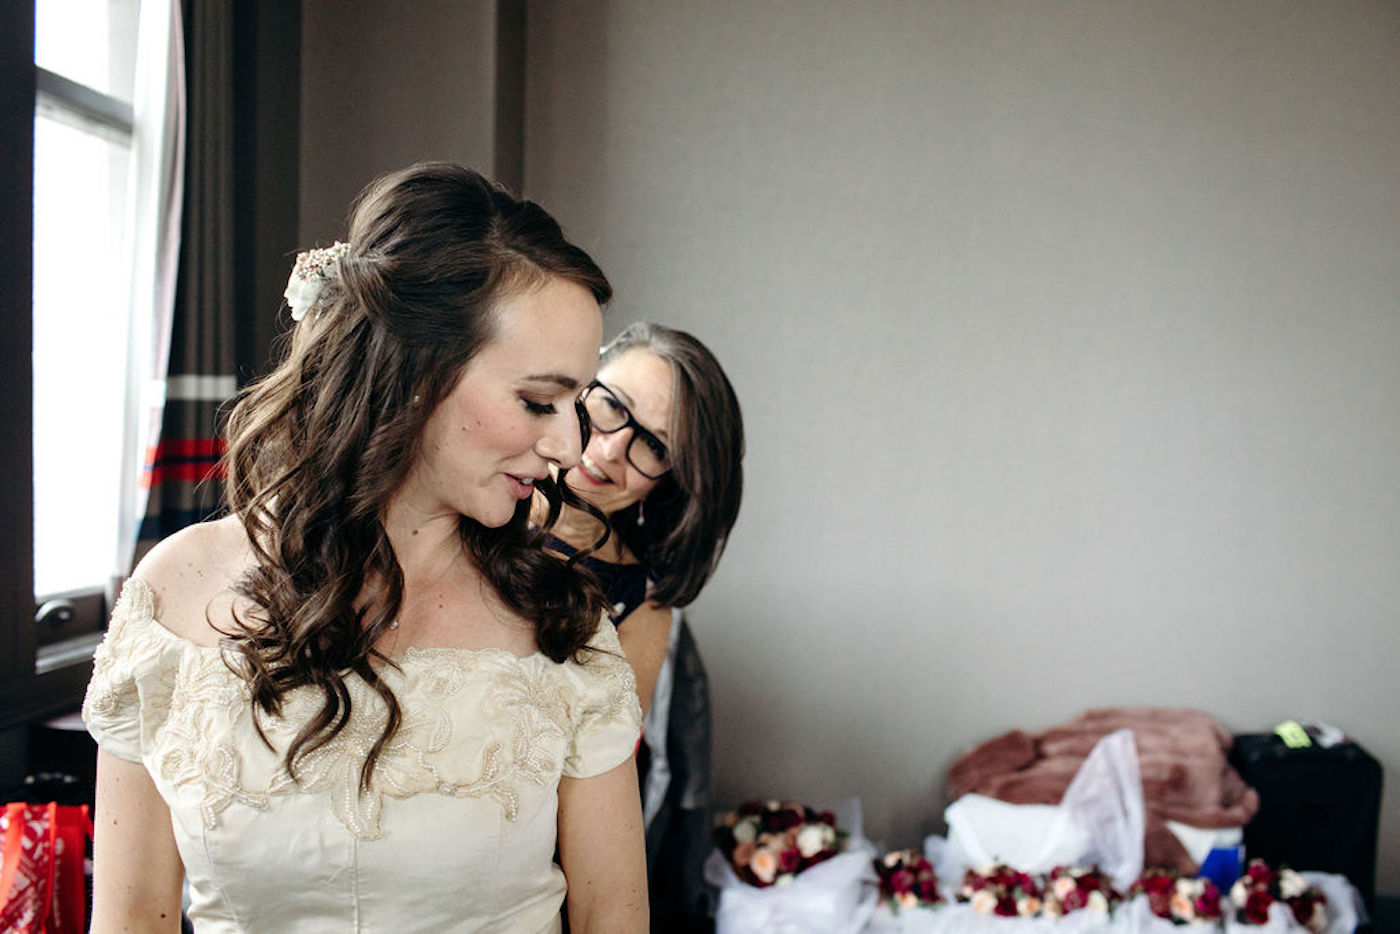 Bride and mom, buttoning her wedding dress - How mom can help with wedding planning - Leah E. Moss Designs, photo by Casey Brodley